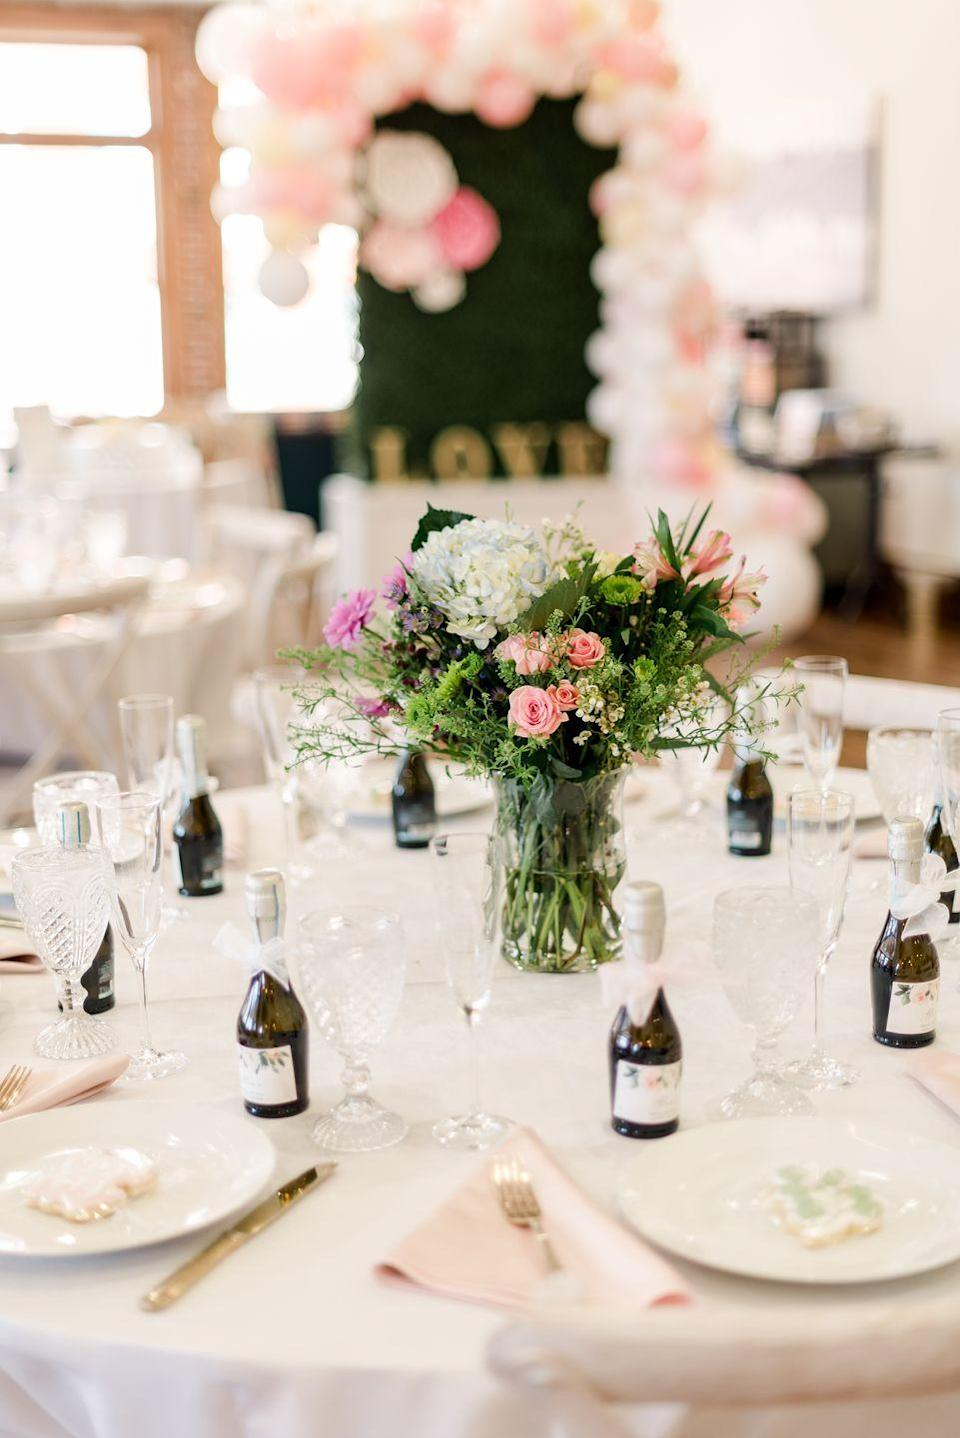 <p>Each place setting had a sweet, small bottle of champagne commemorating the occasion. (Hiccup!)</p>